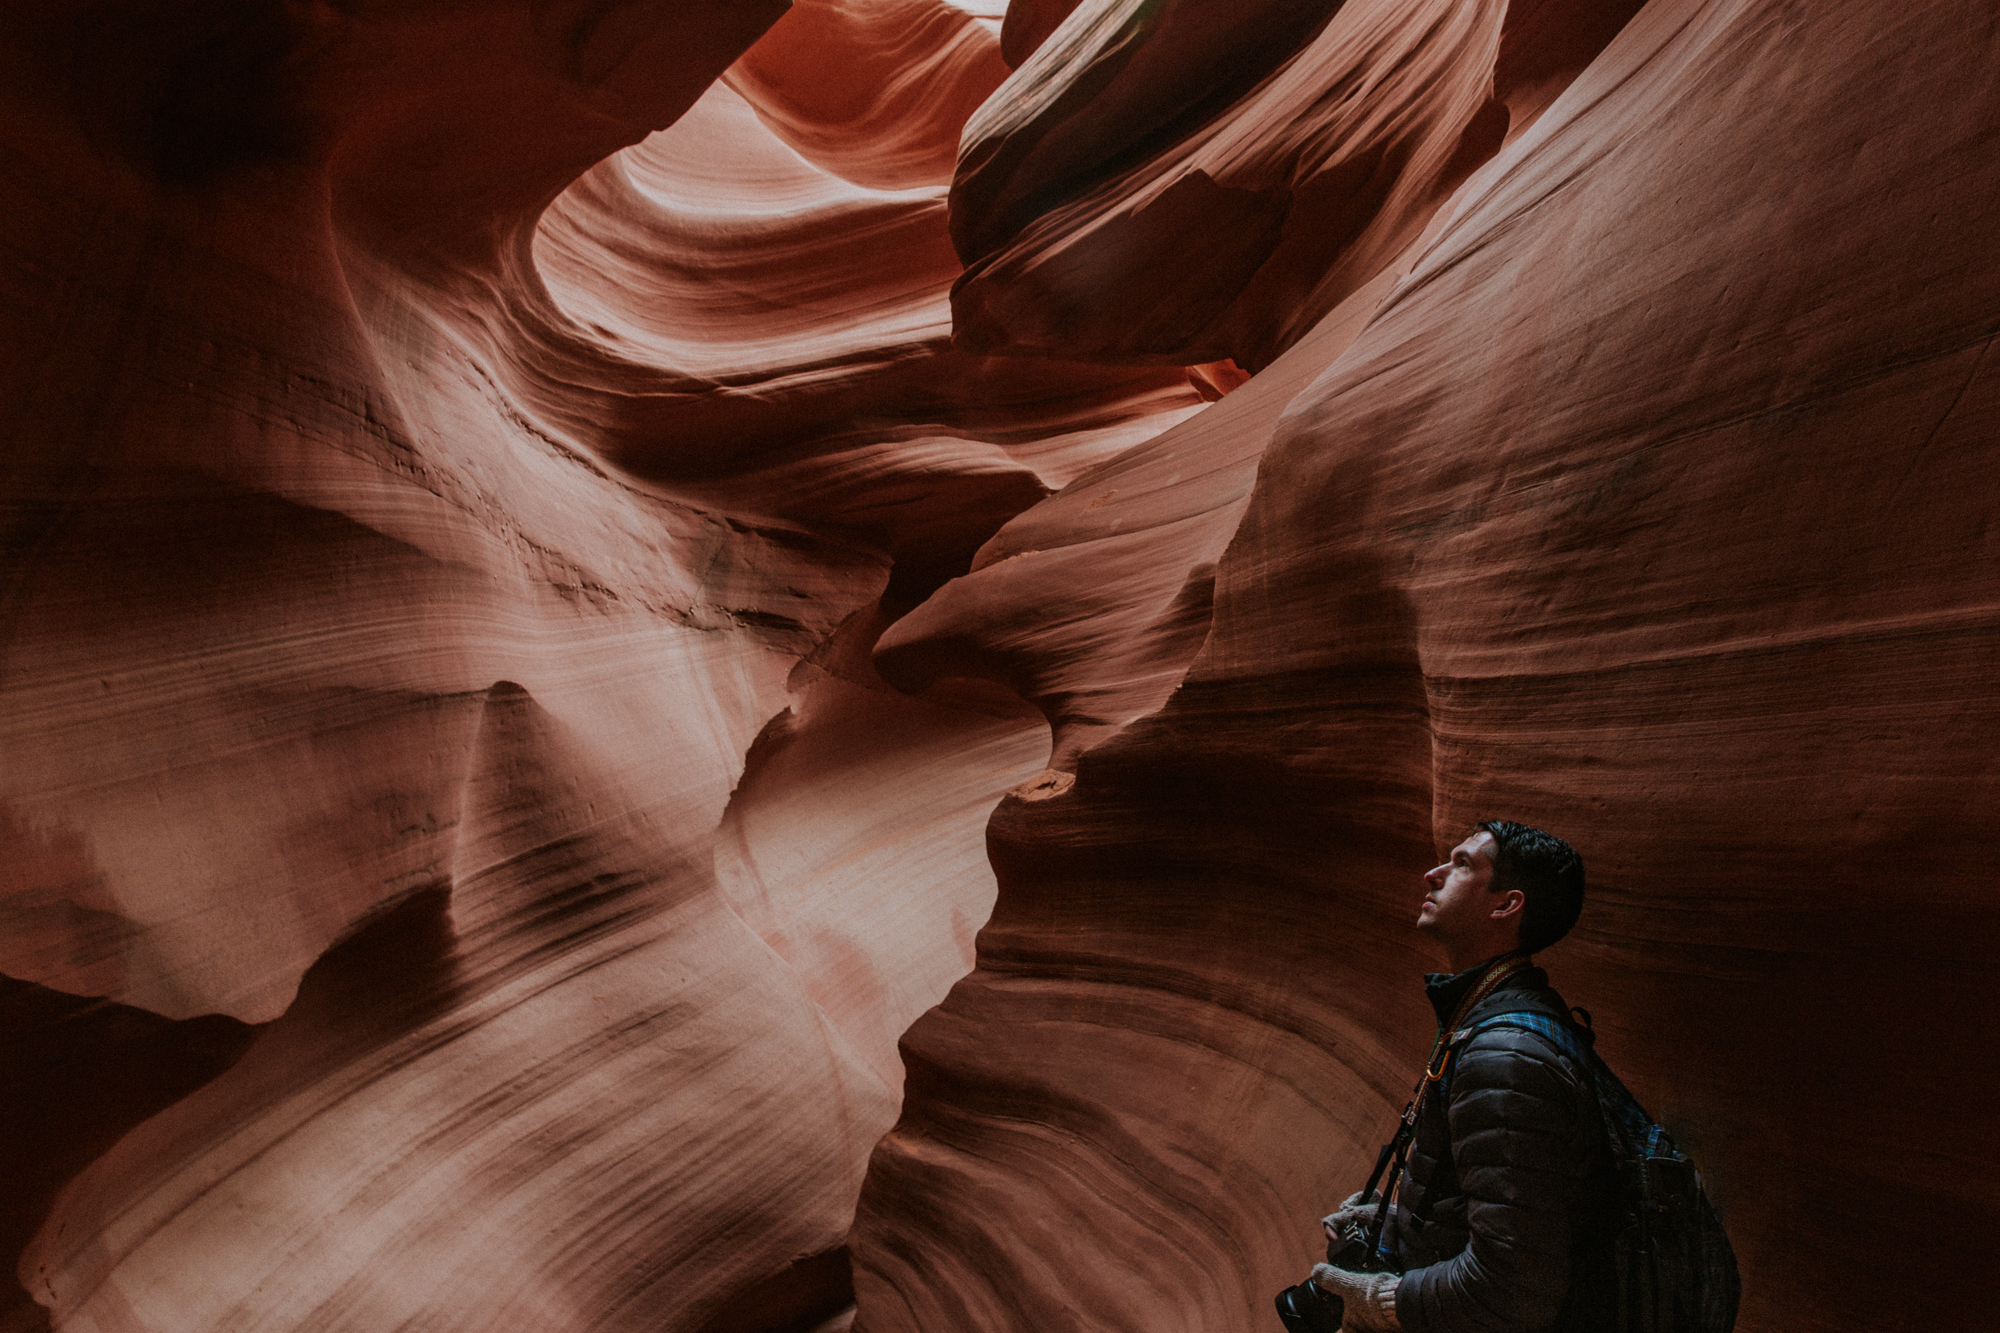 travel destination southwest road trip arizona phoenix emily hary photography elopement natural light photographer map antelope canyon page